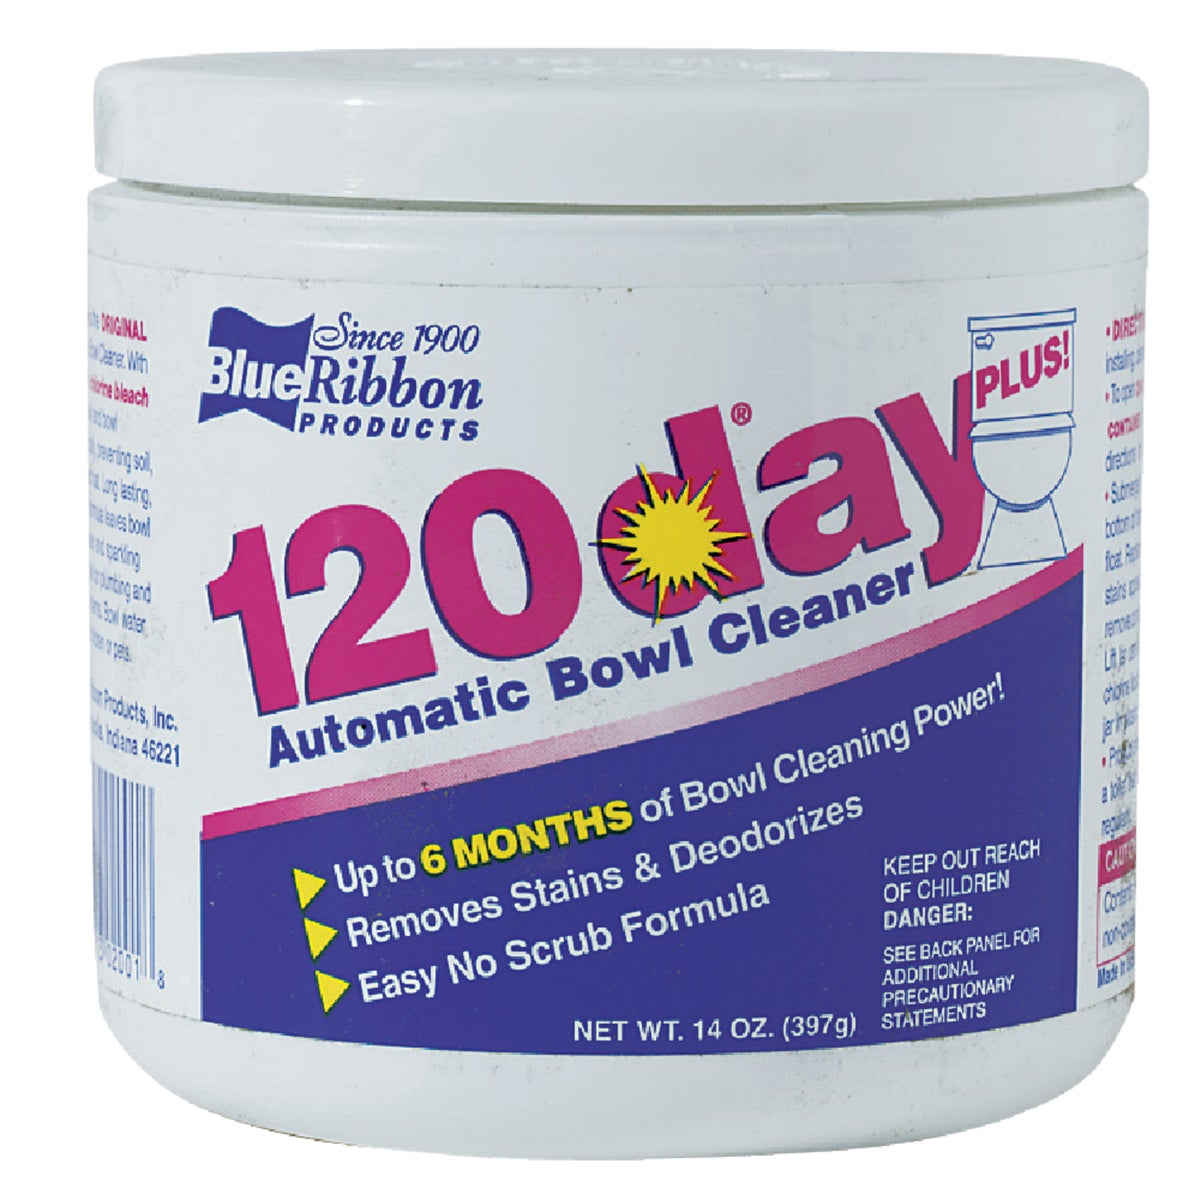 120 Day Automatic Bowl Cleaner